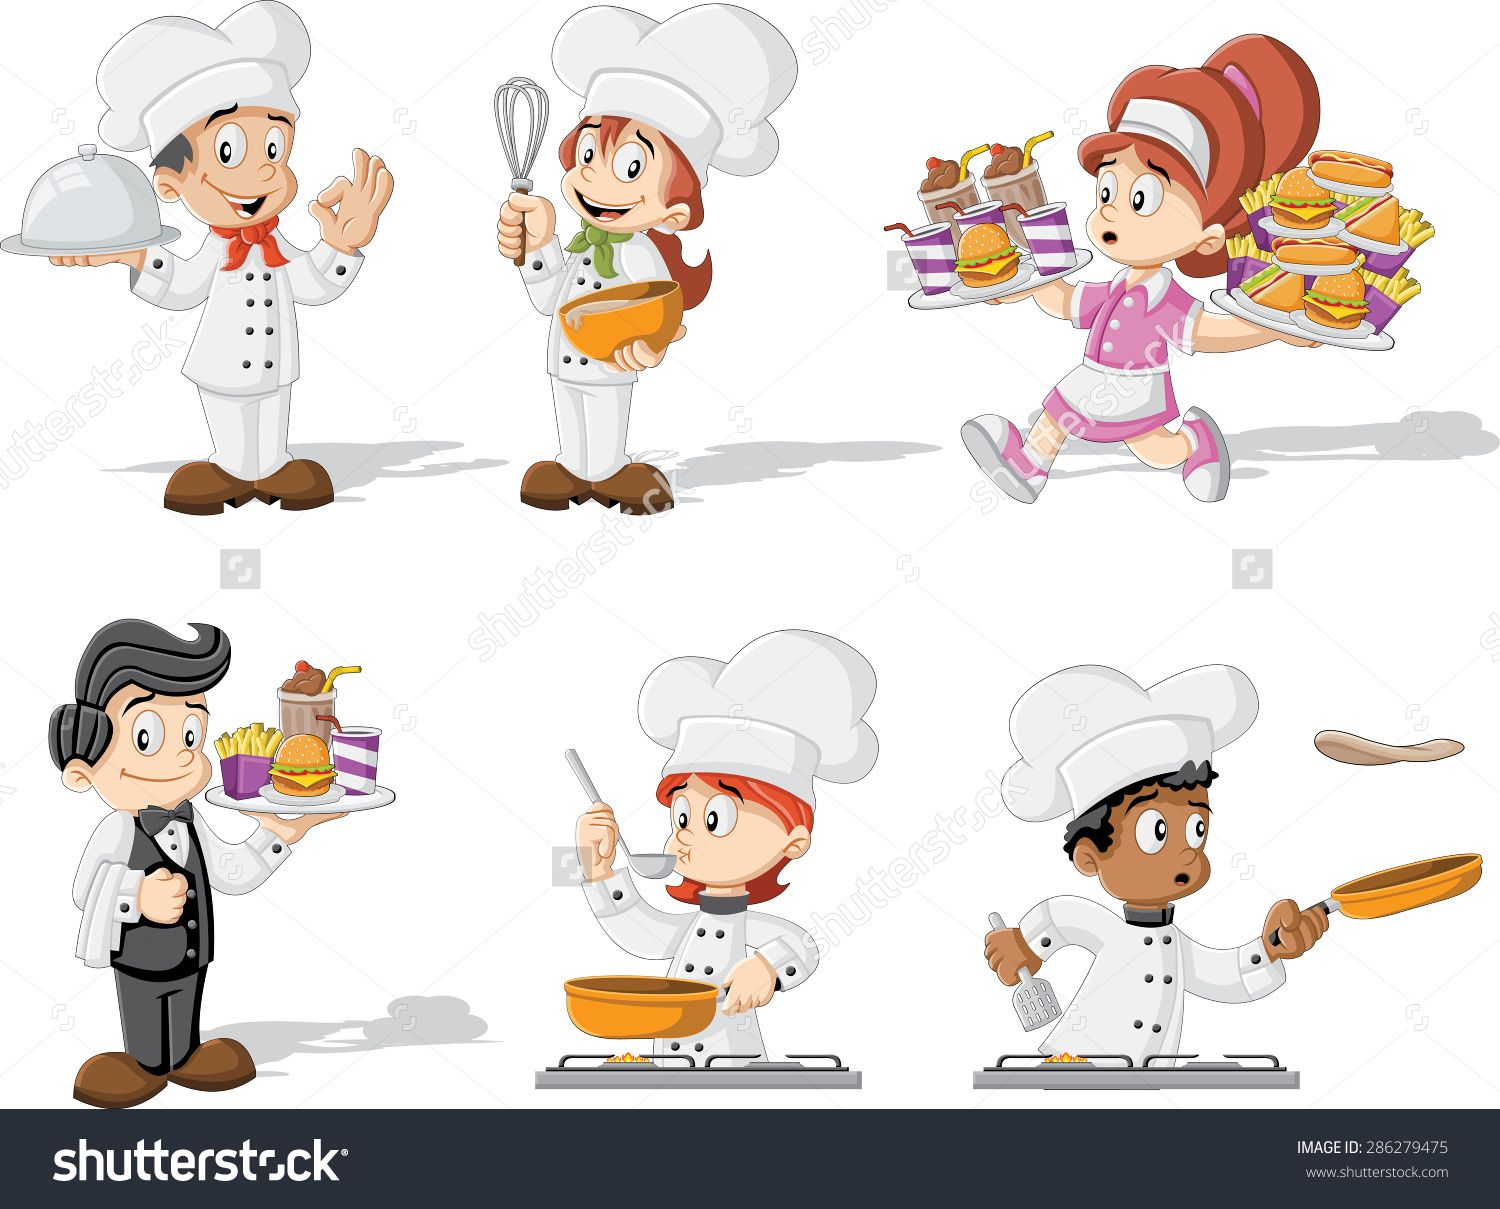 Funny Cartoon Clip Art Waitress.